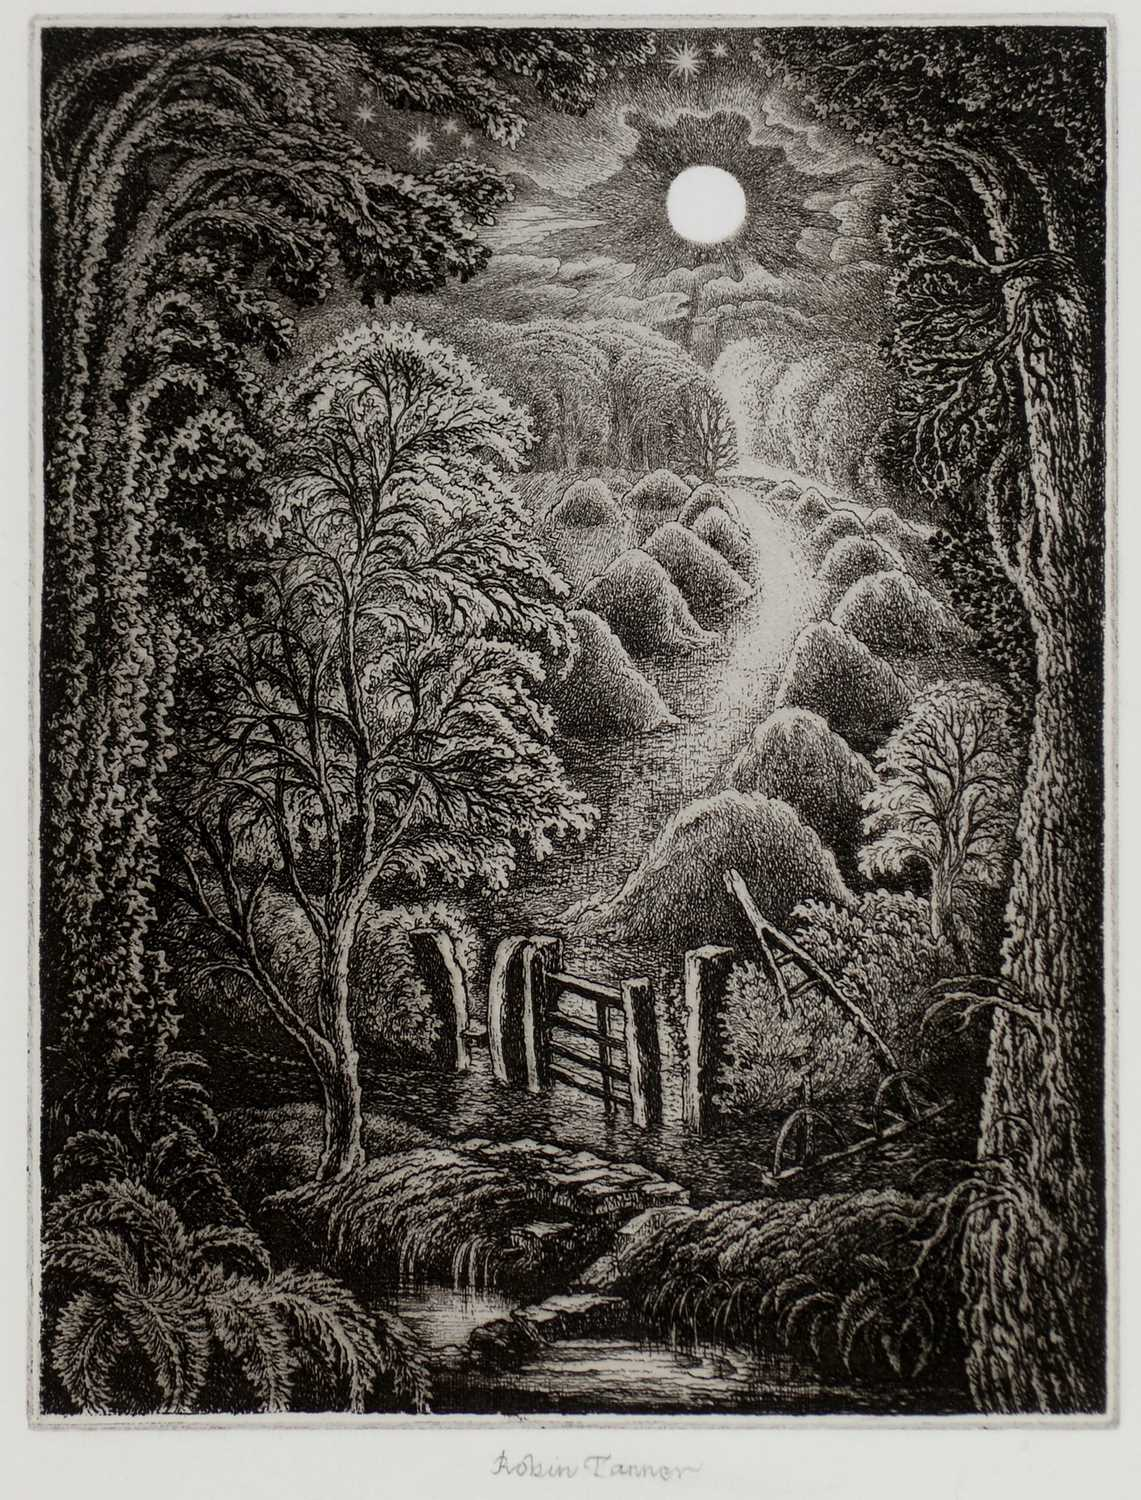 Lot 272-Robin Tanner - etching.